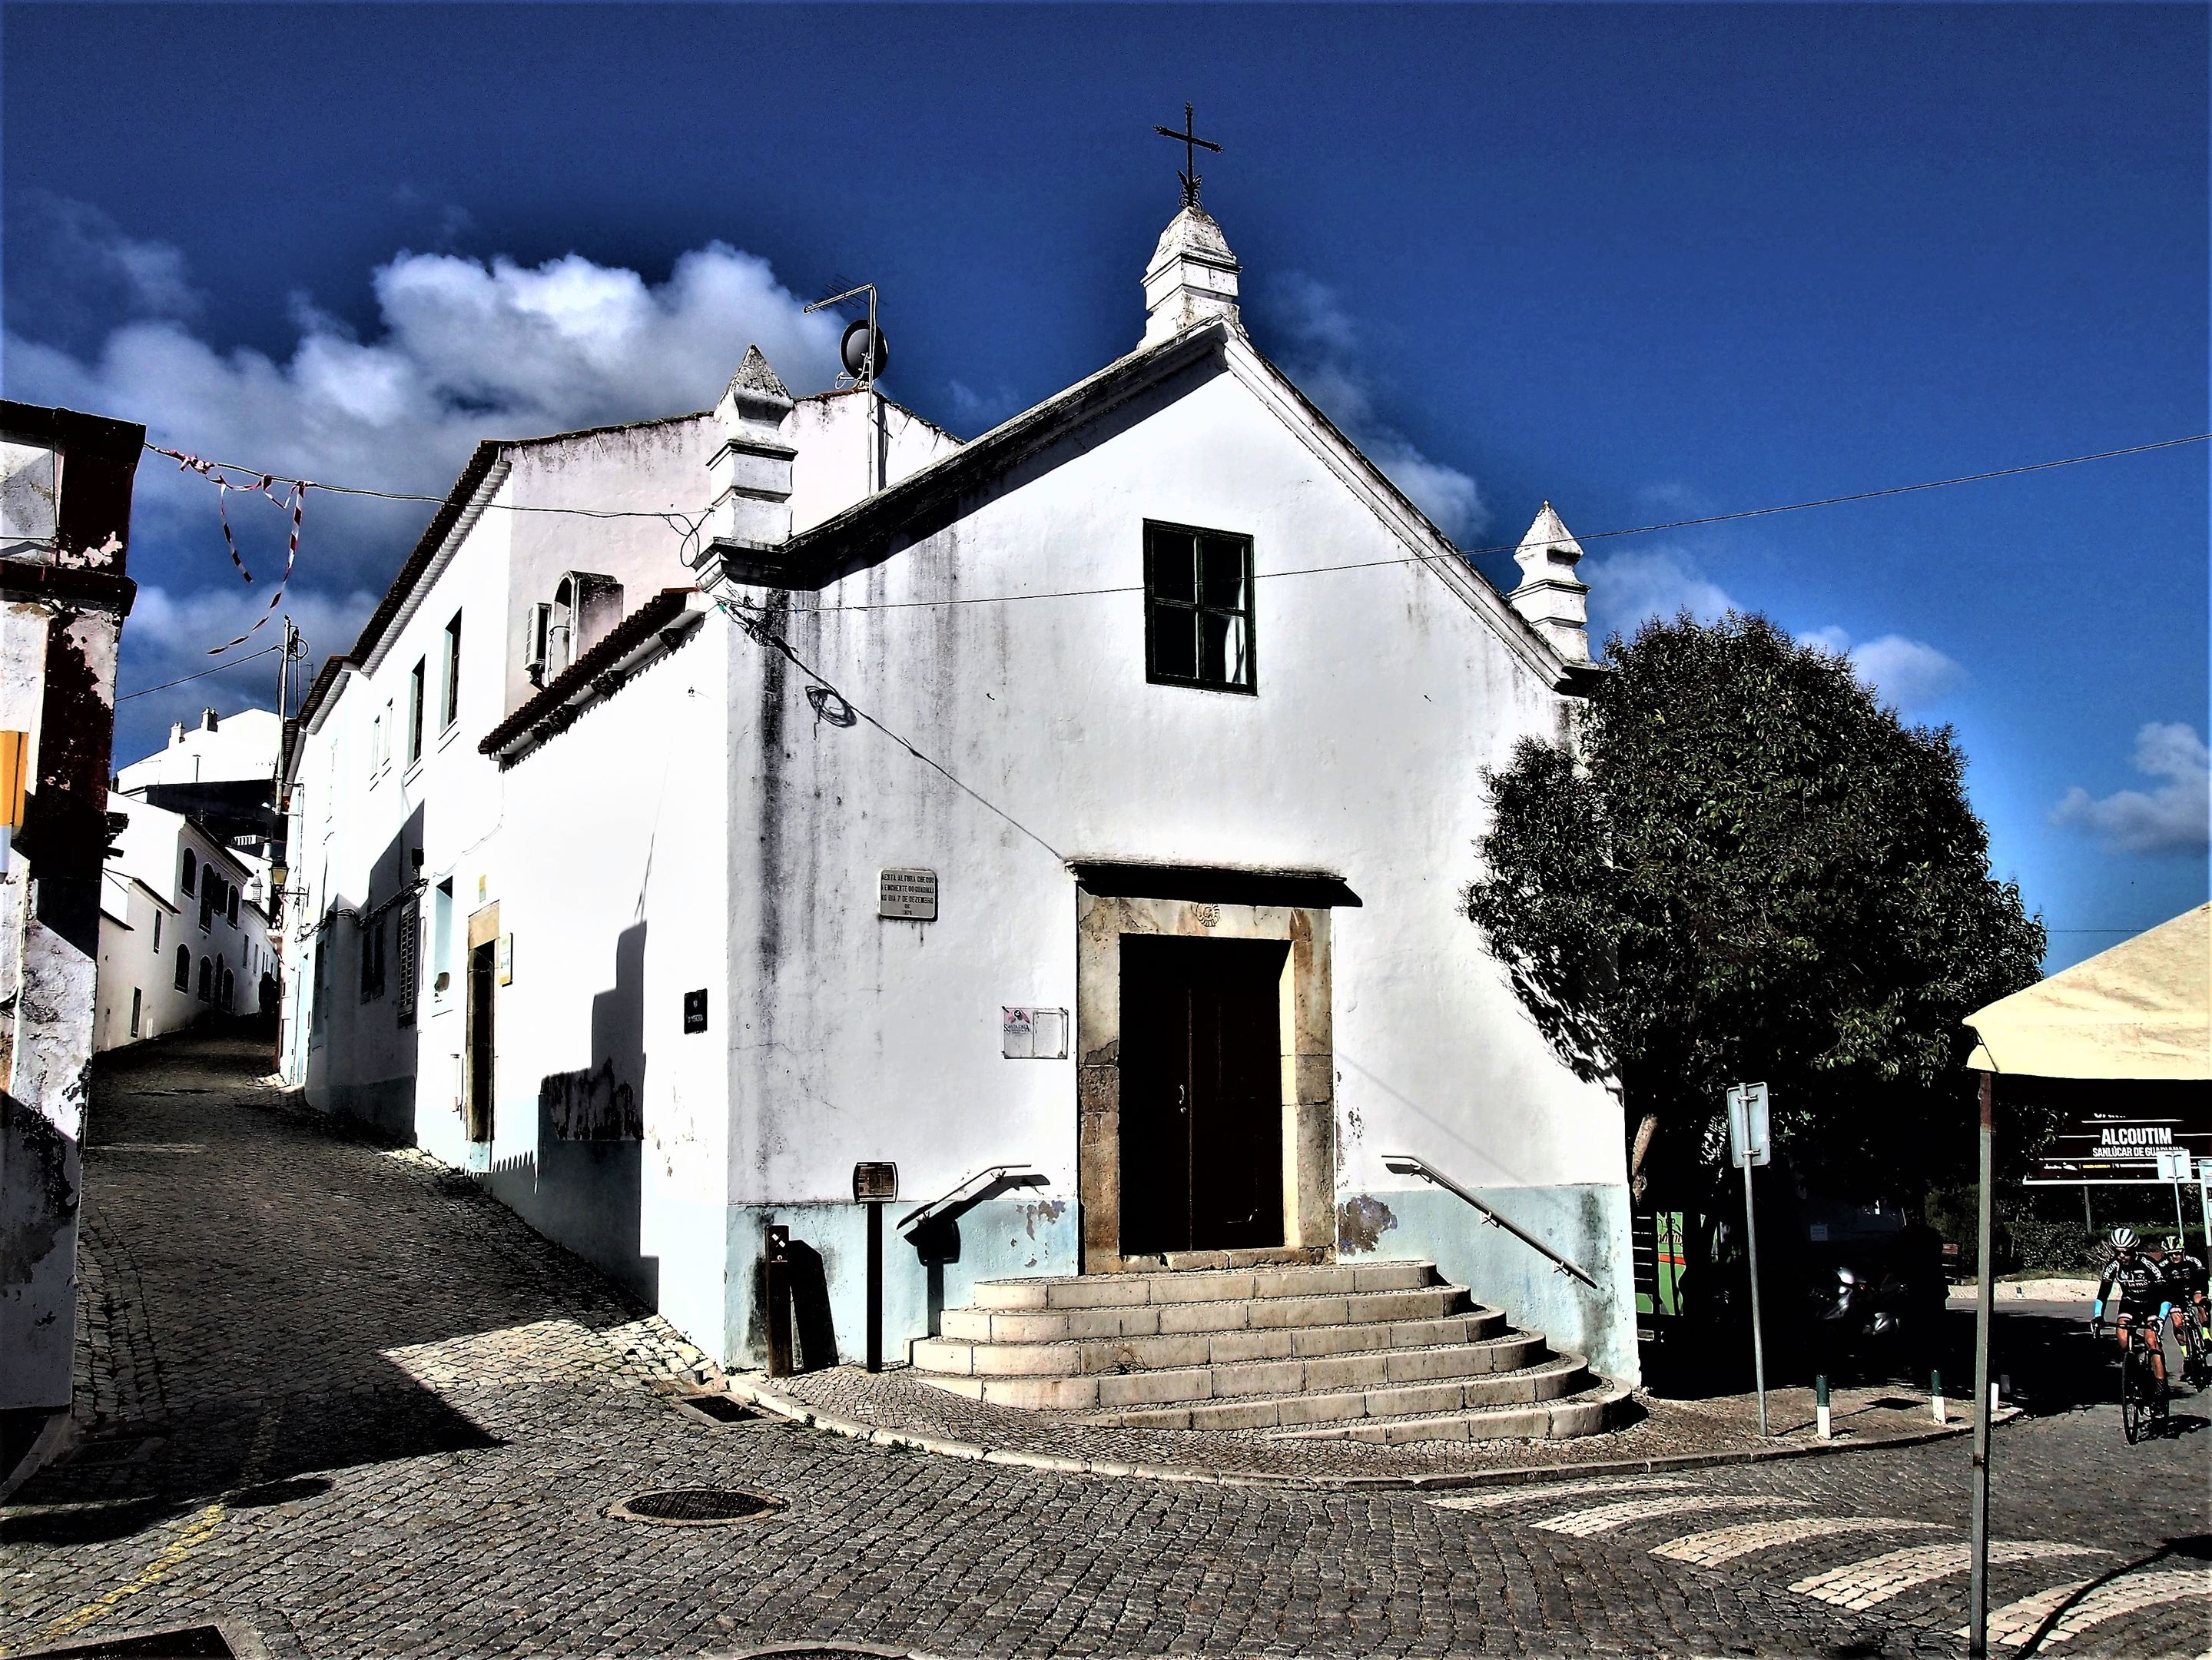 The Igreja da Misericorda (Chrurch of Mercy), Alcoutim